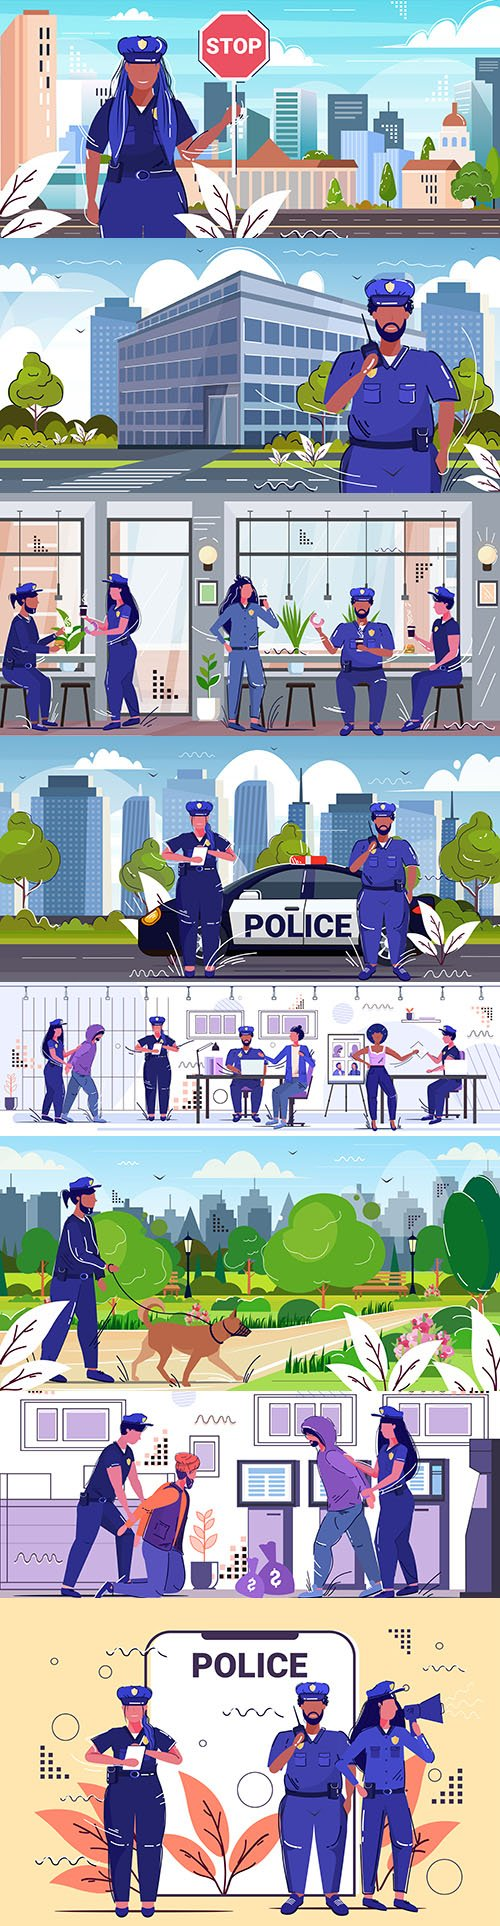 Policeman and criminal cityscape concept security